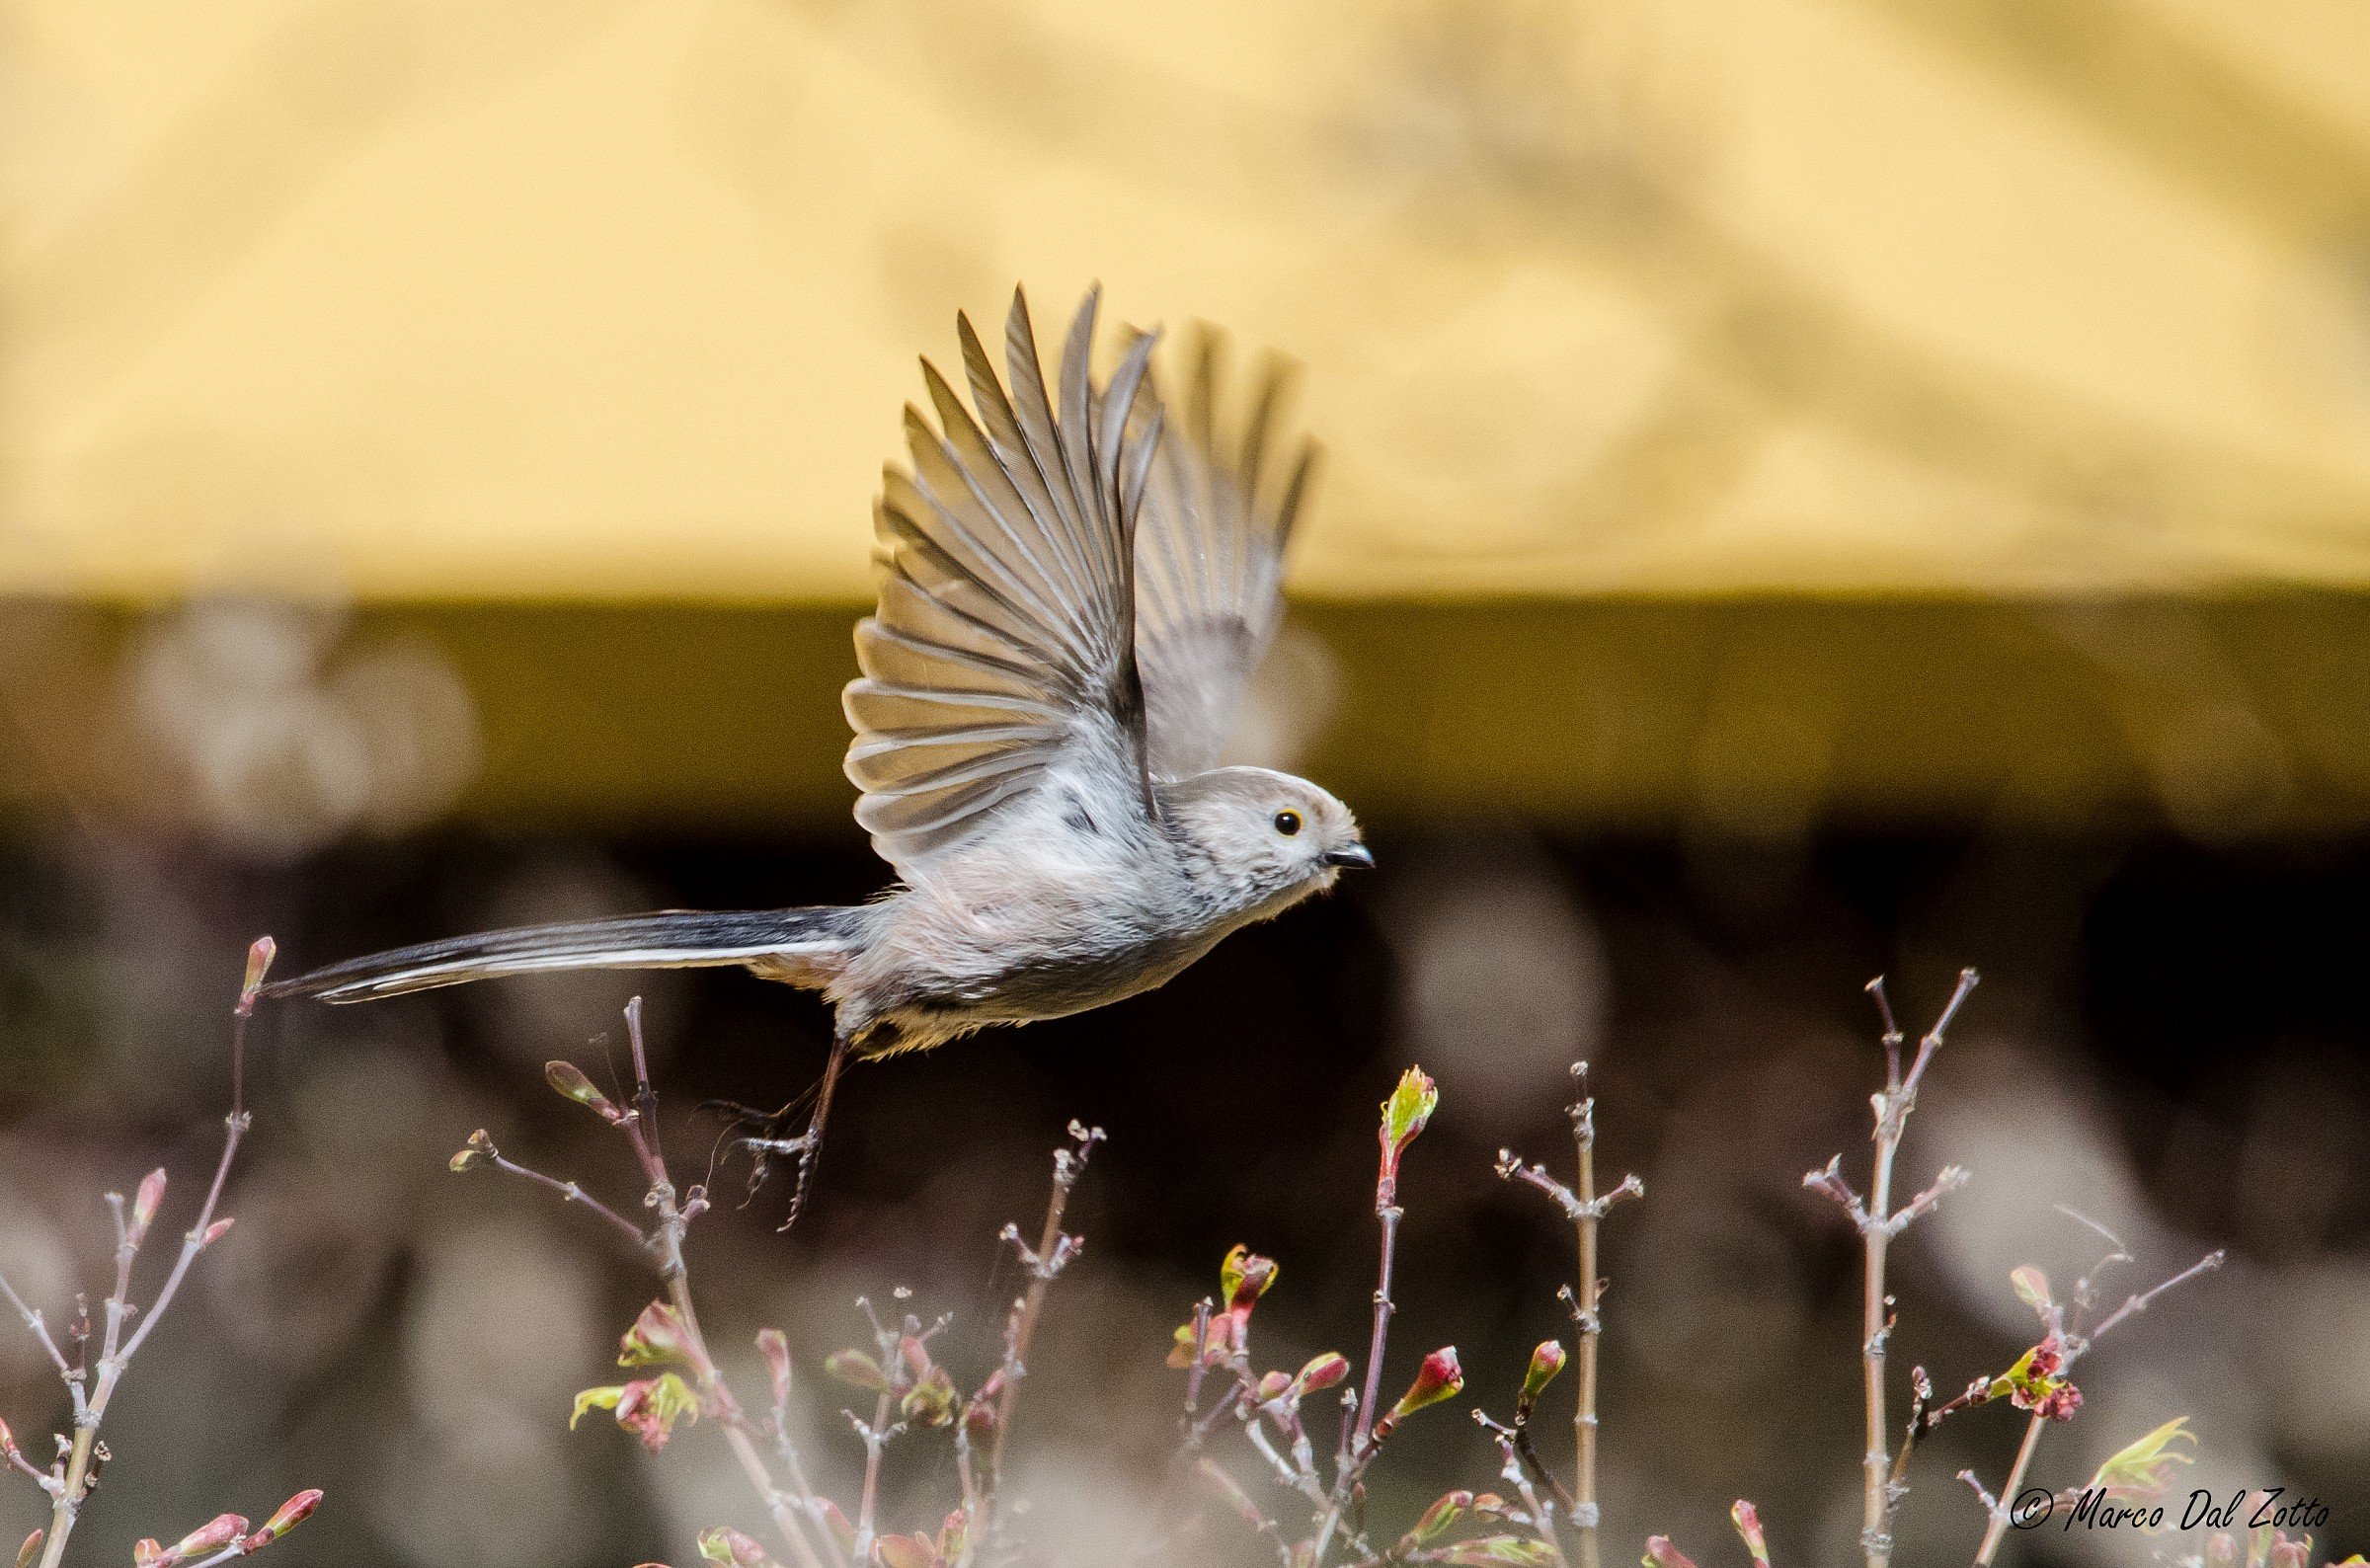 The flight of the long-tailed tit...